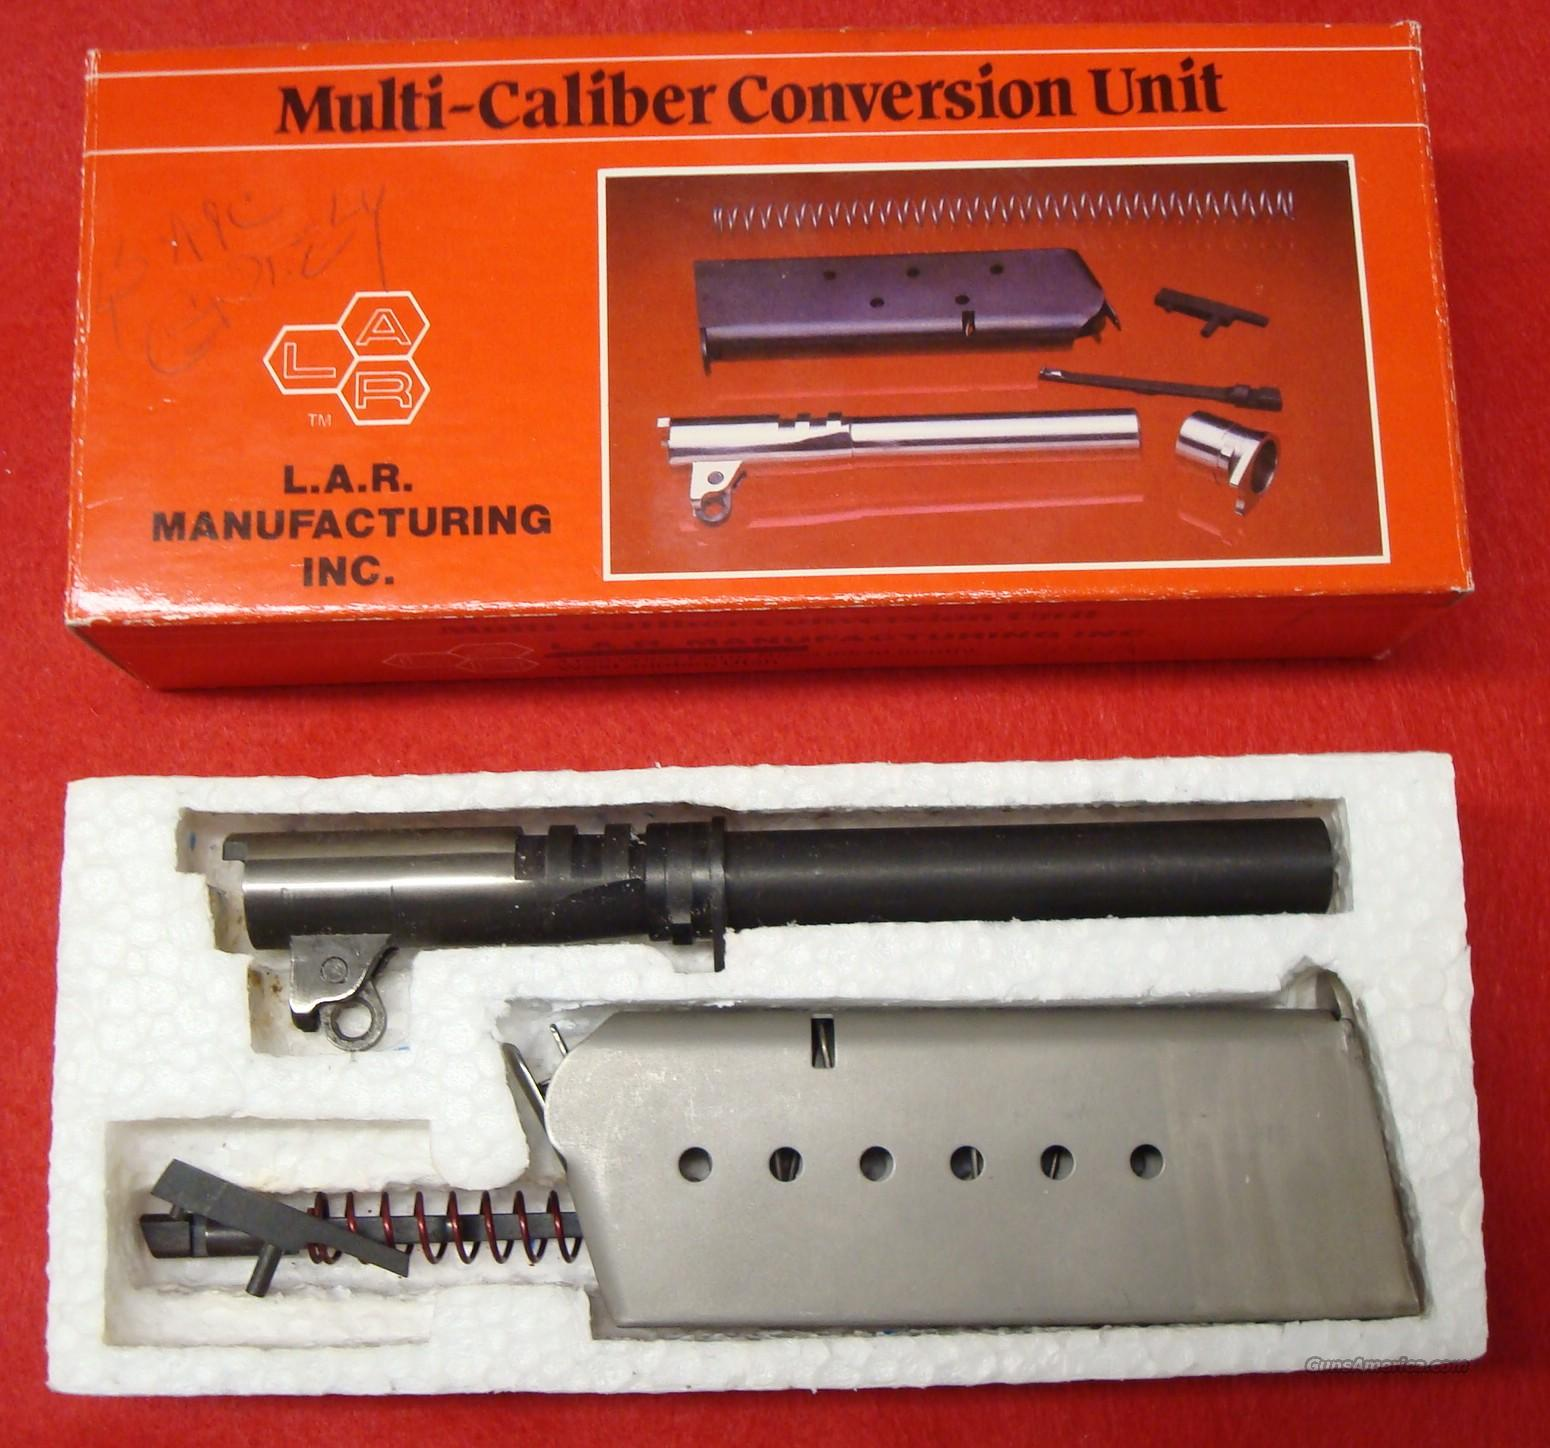 LAR Grizzly .45 ACP Conversion Kit  Guns > Pistols > LAR/Grizzly Mfg. Co. Pistols